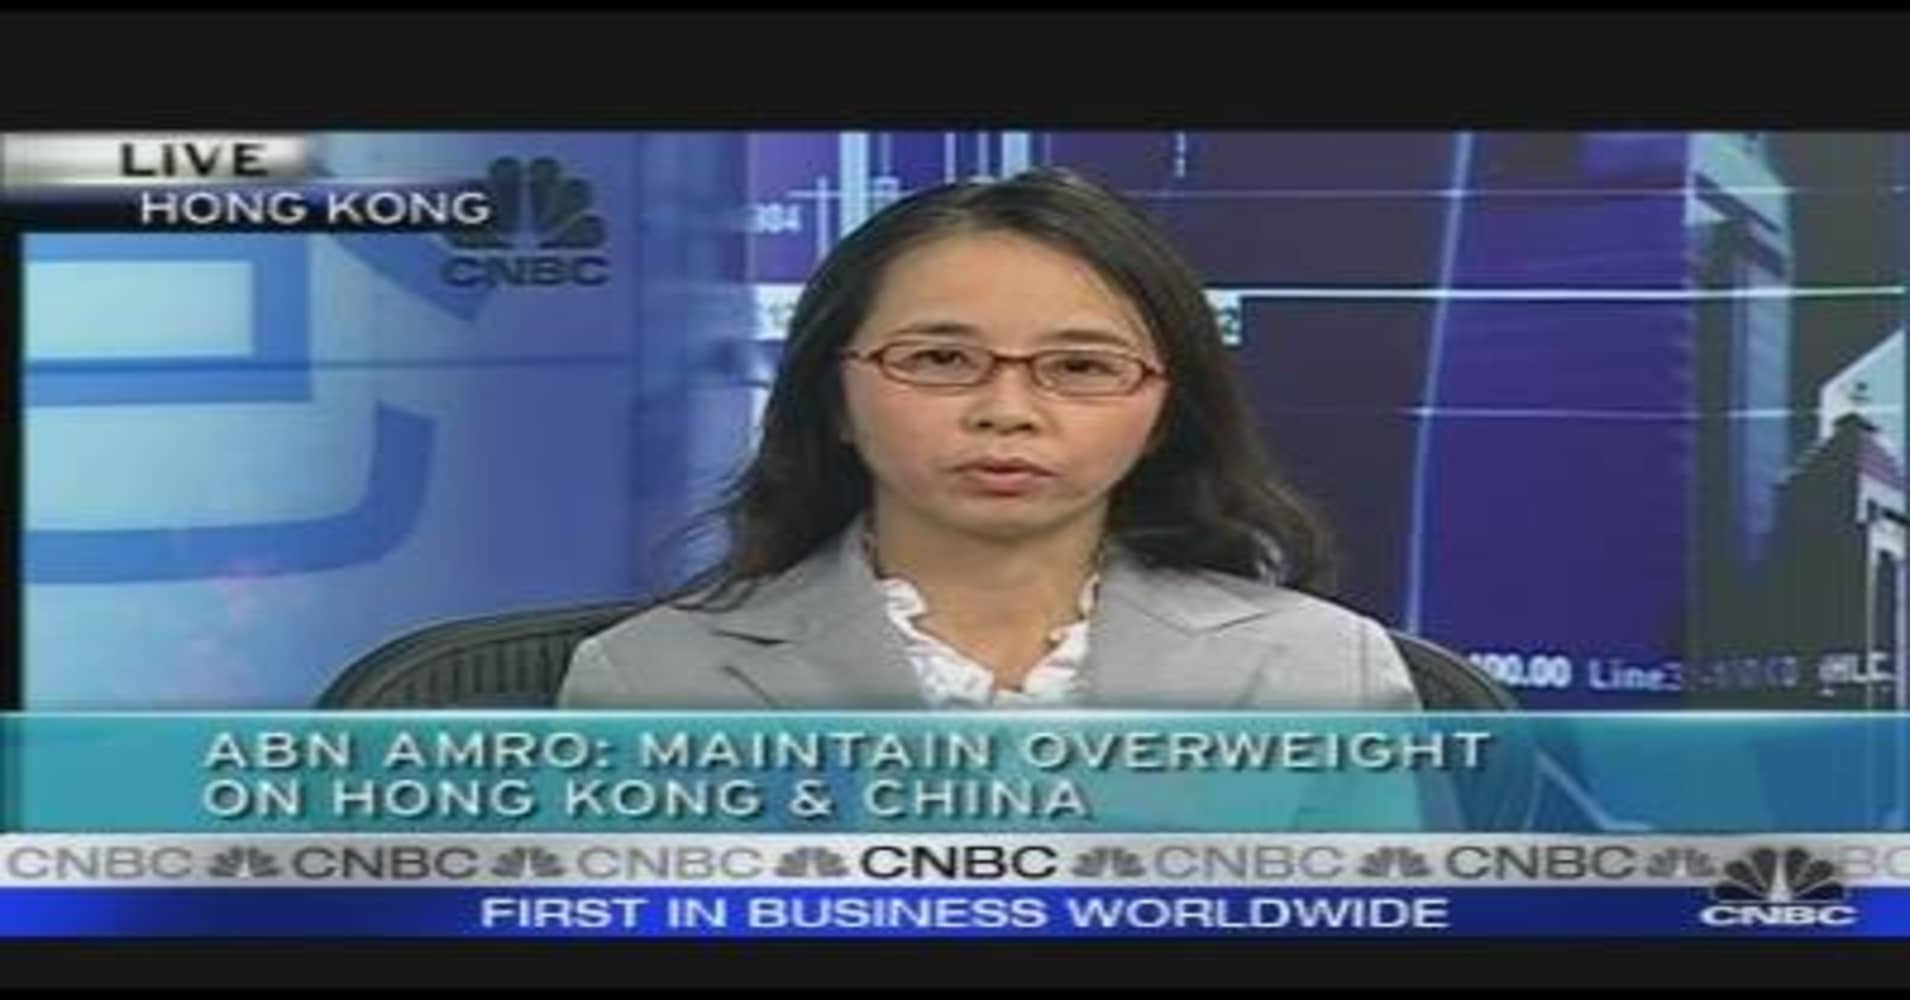 Overweight on HK & China